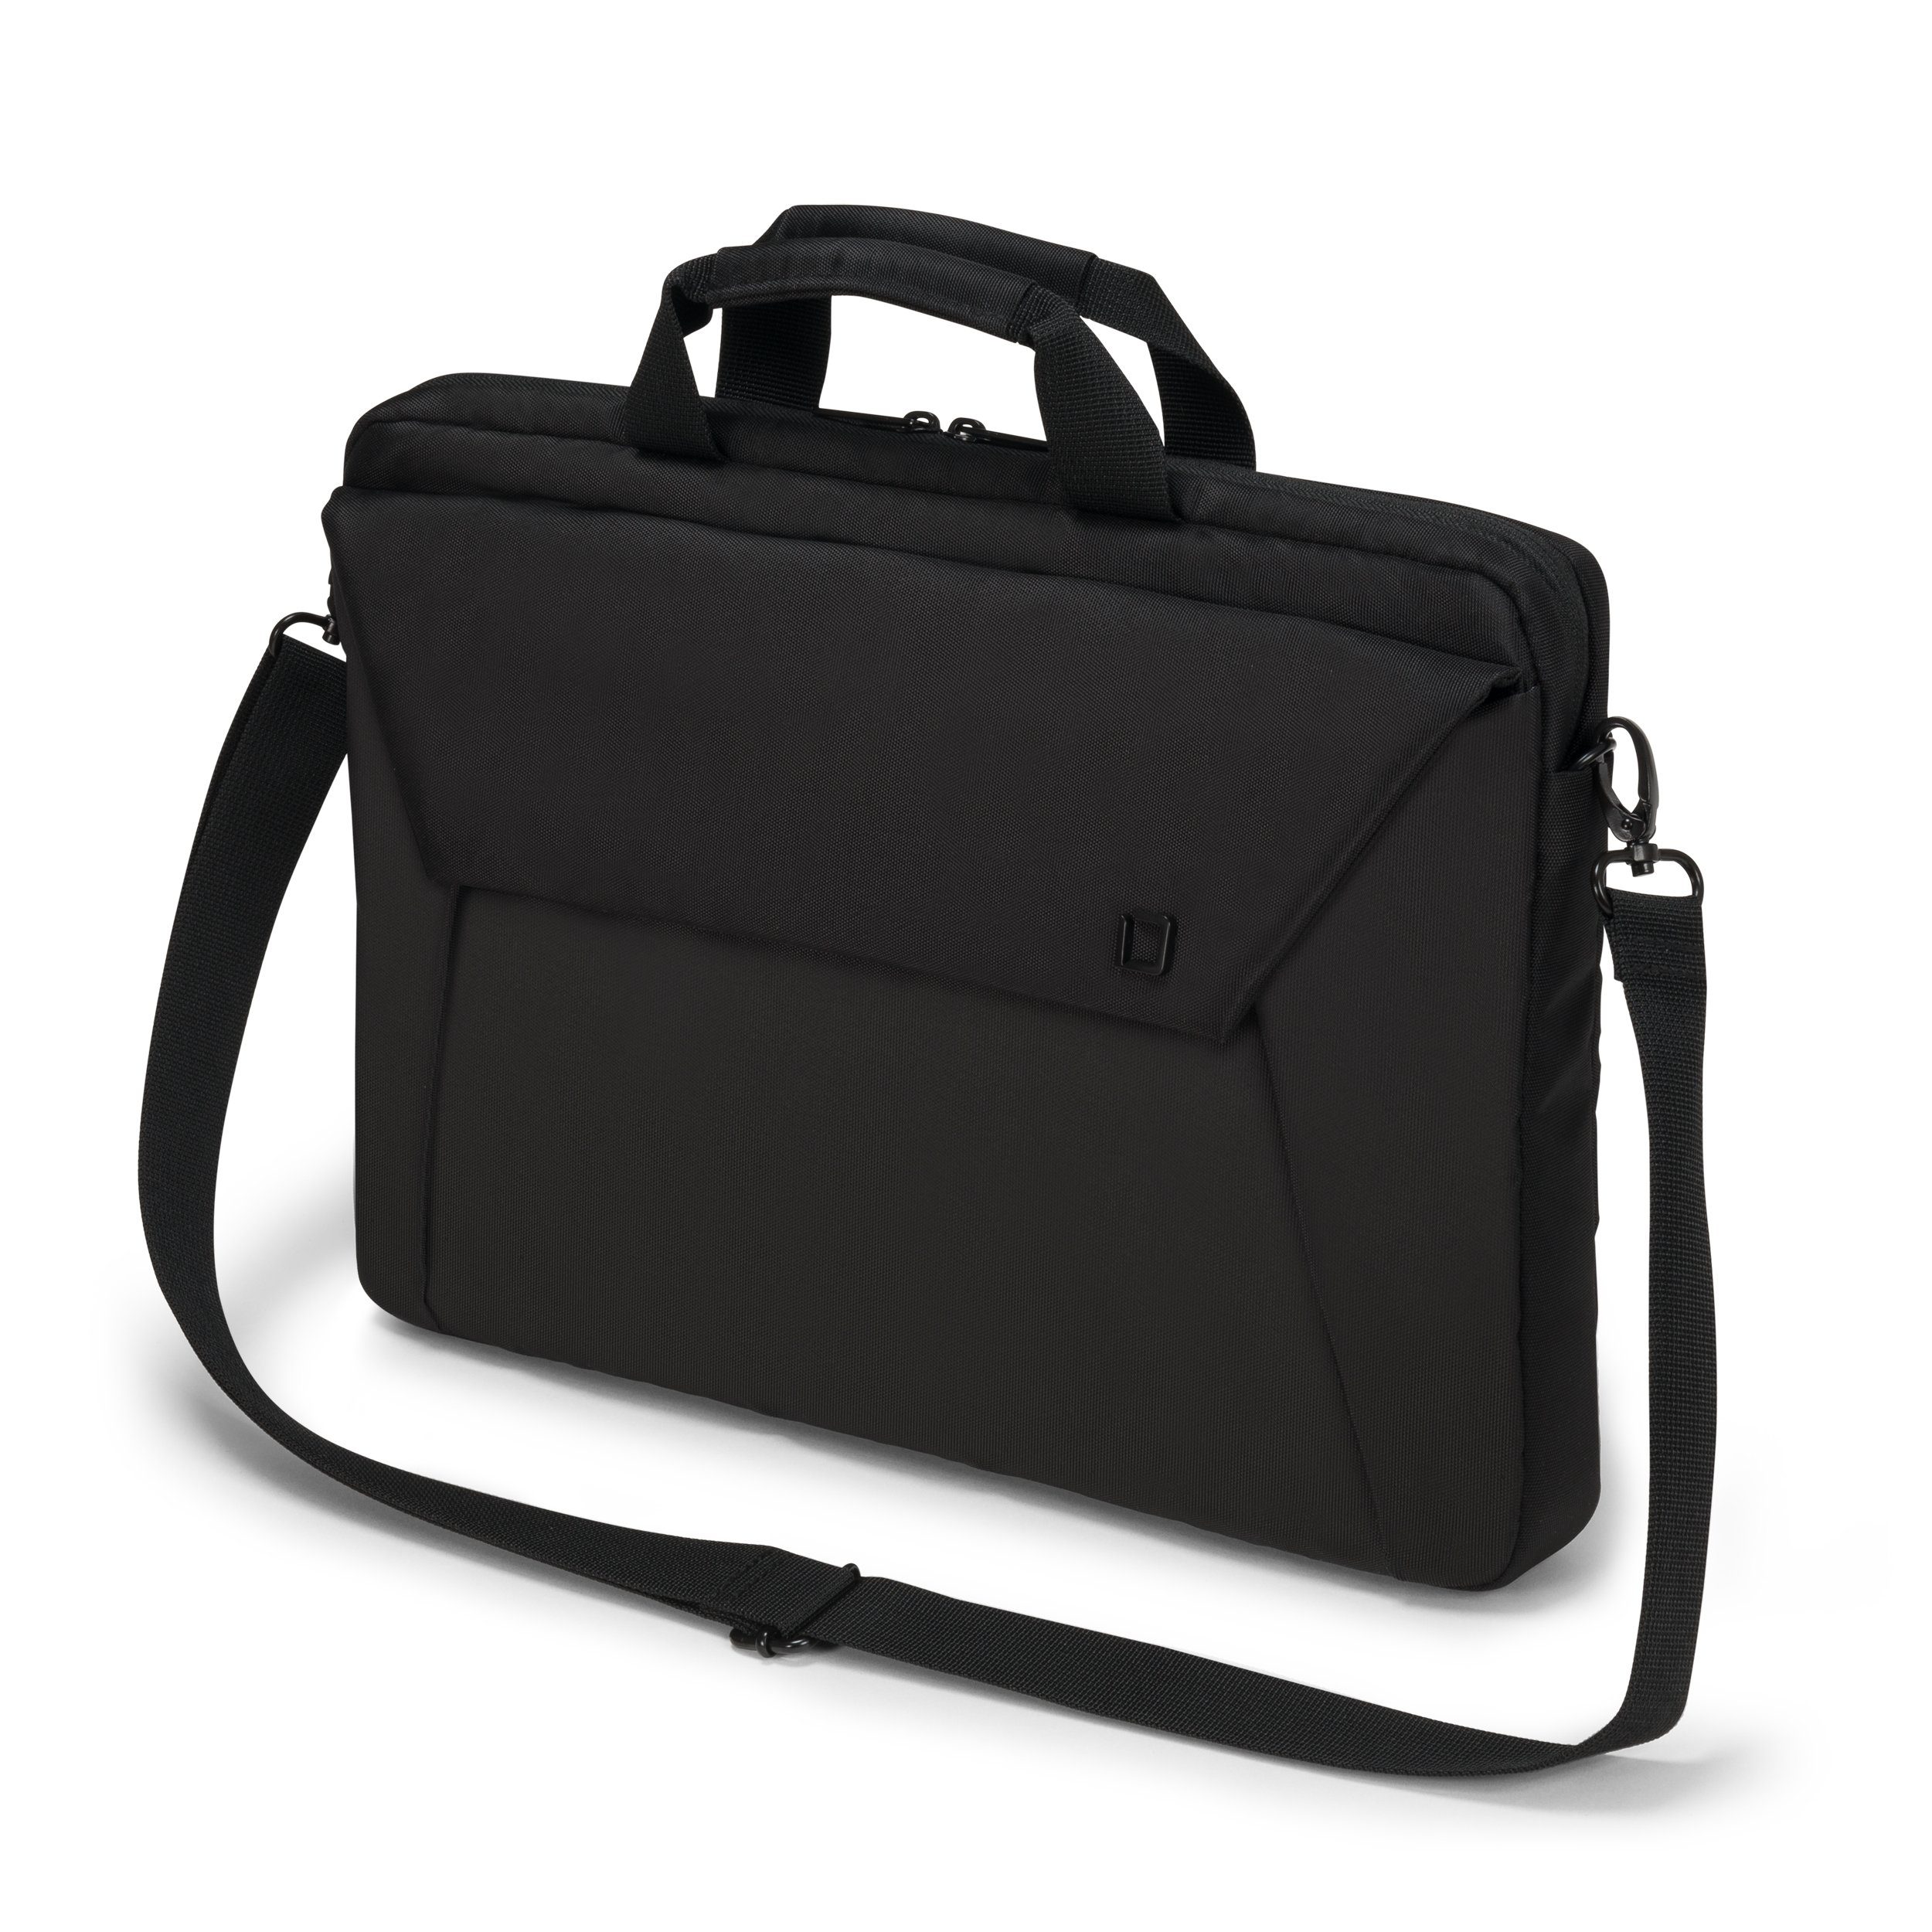 Dicota D31209 15.6 Briefcase Black notebook case - notebook cases (39.6 cm (15.6), Briefcase, B